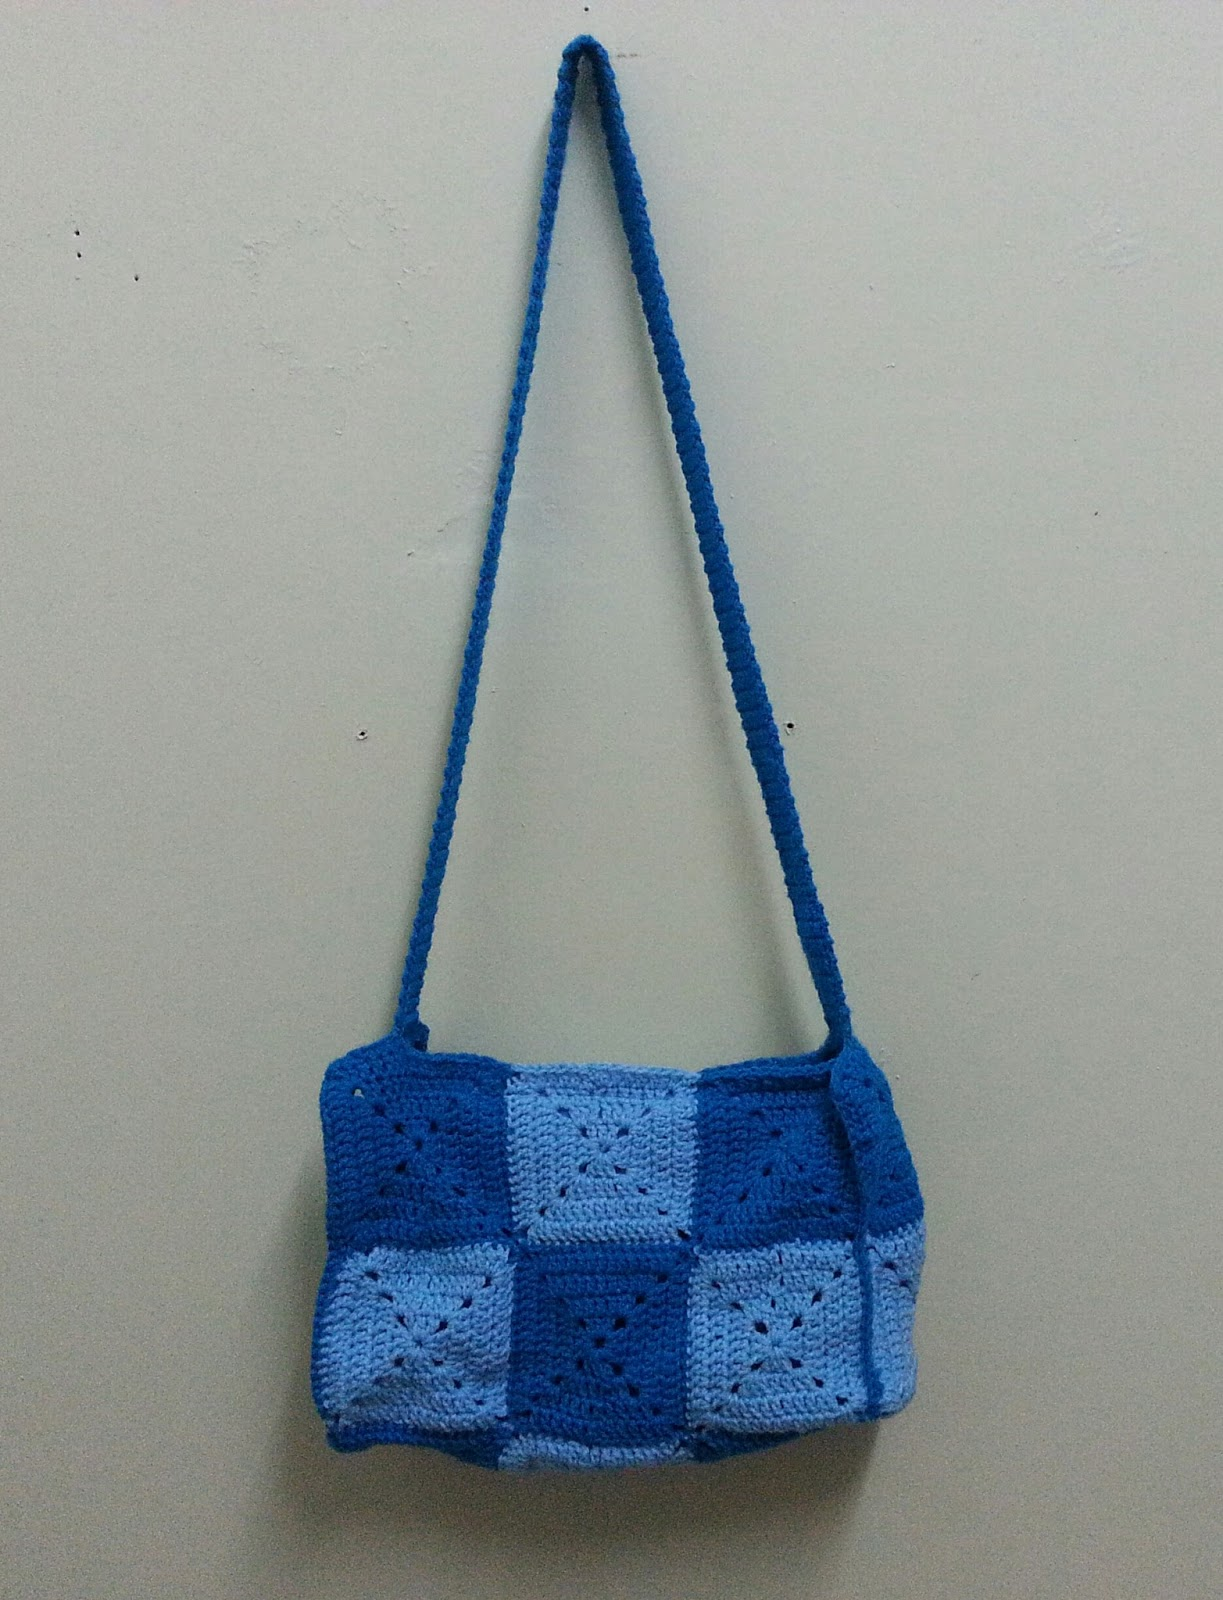 Sling bag crochet - The Final Task Was To Crochet The Strap A Bit Long For A Sling Bag I Did Single Crochet For The Whole Length So That It Is Firmer